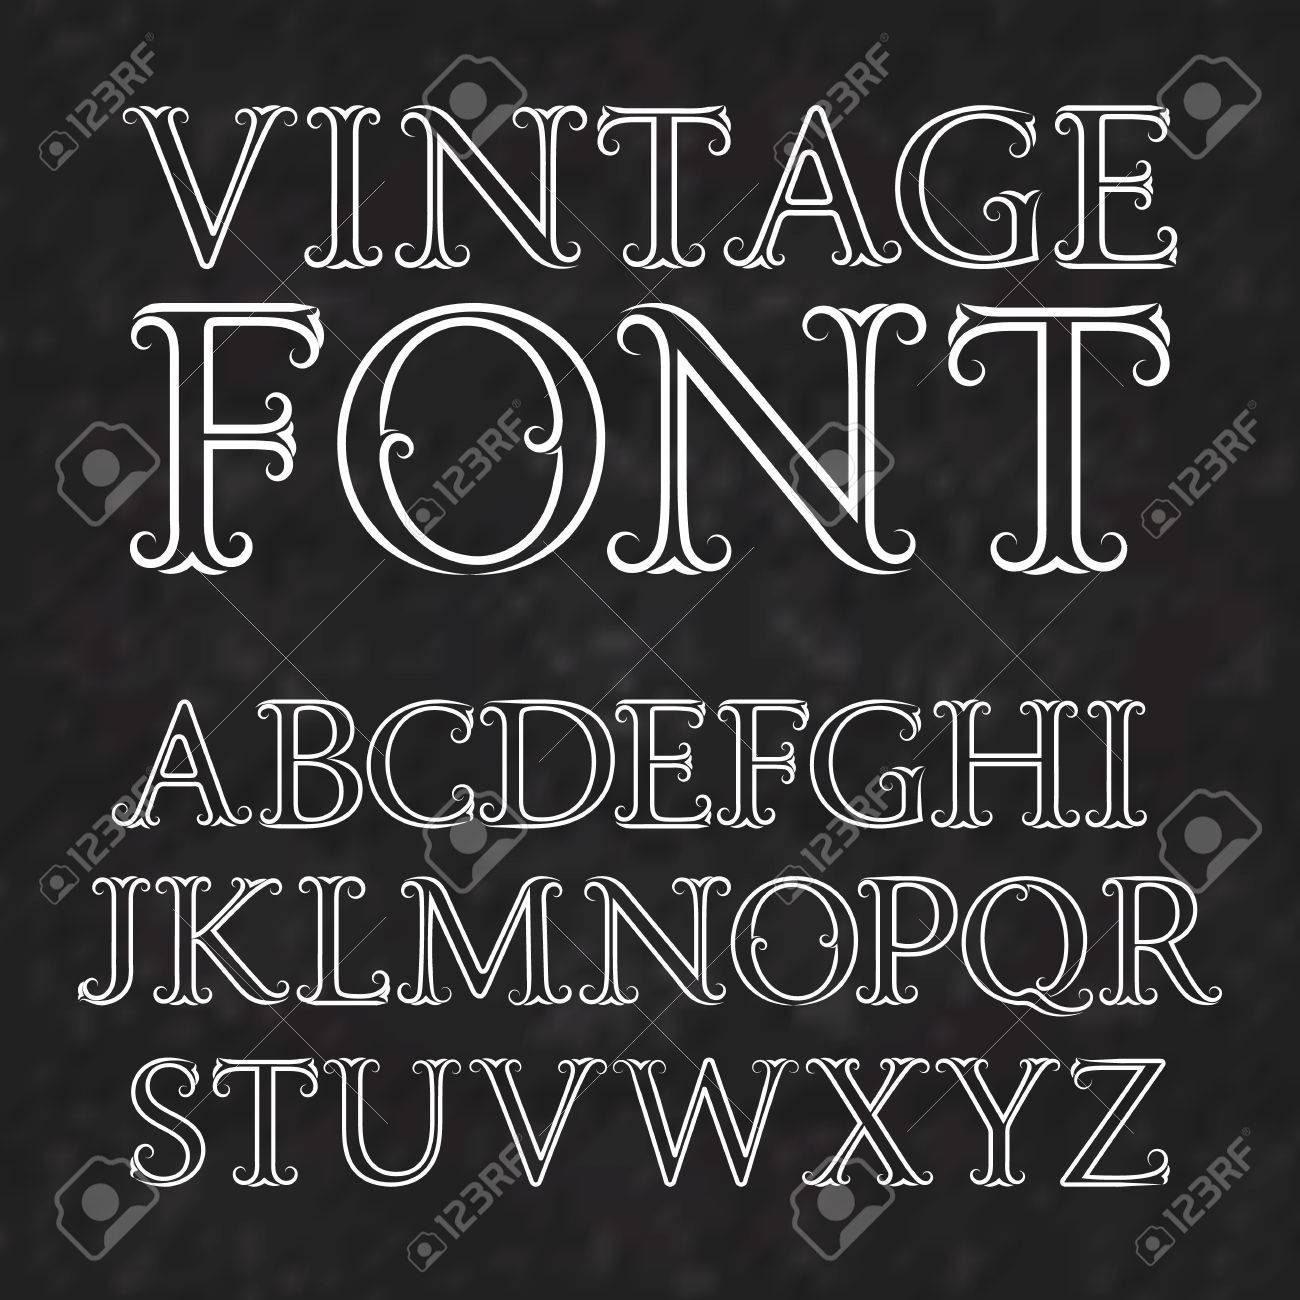 Vector , Vintage letters with flourishes. Vintage font in baroque style.  Vintage latin alphabet. White outline capital letters on a black textured